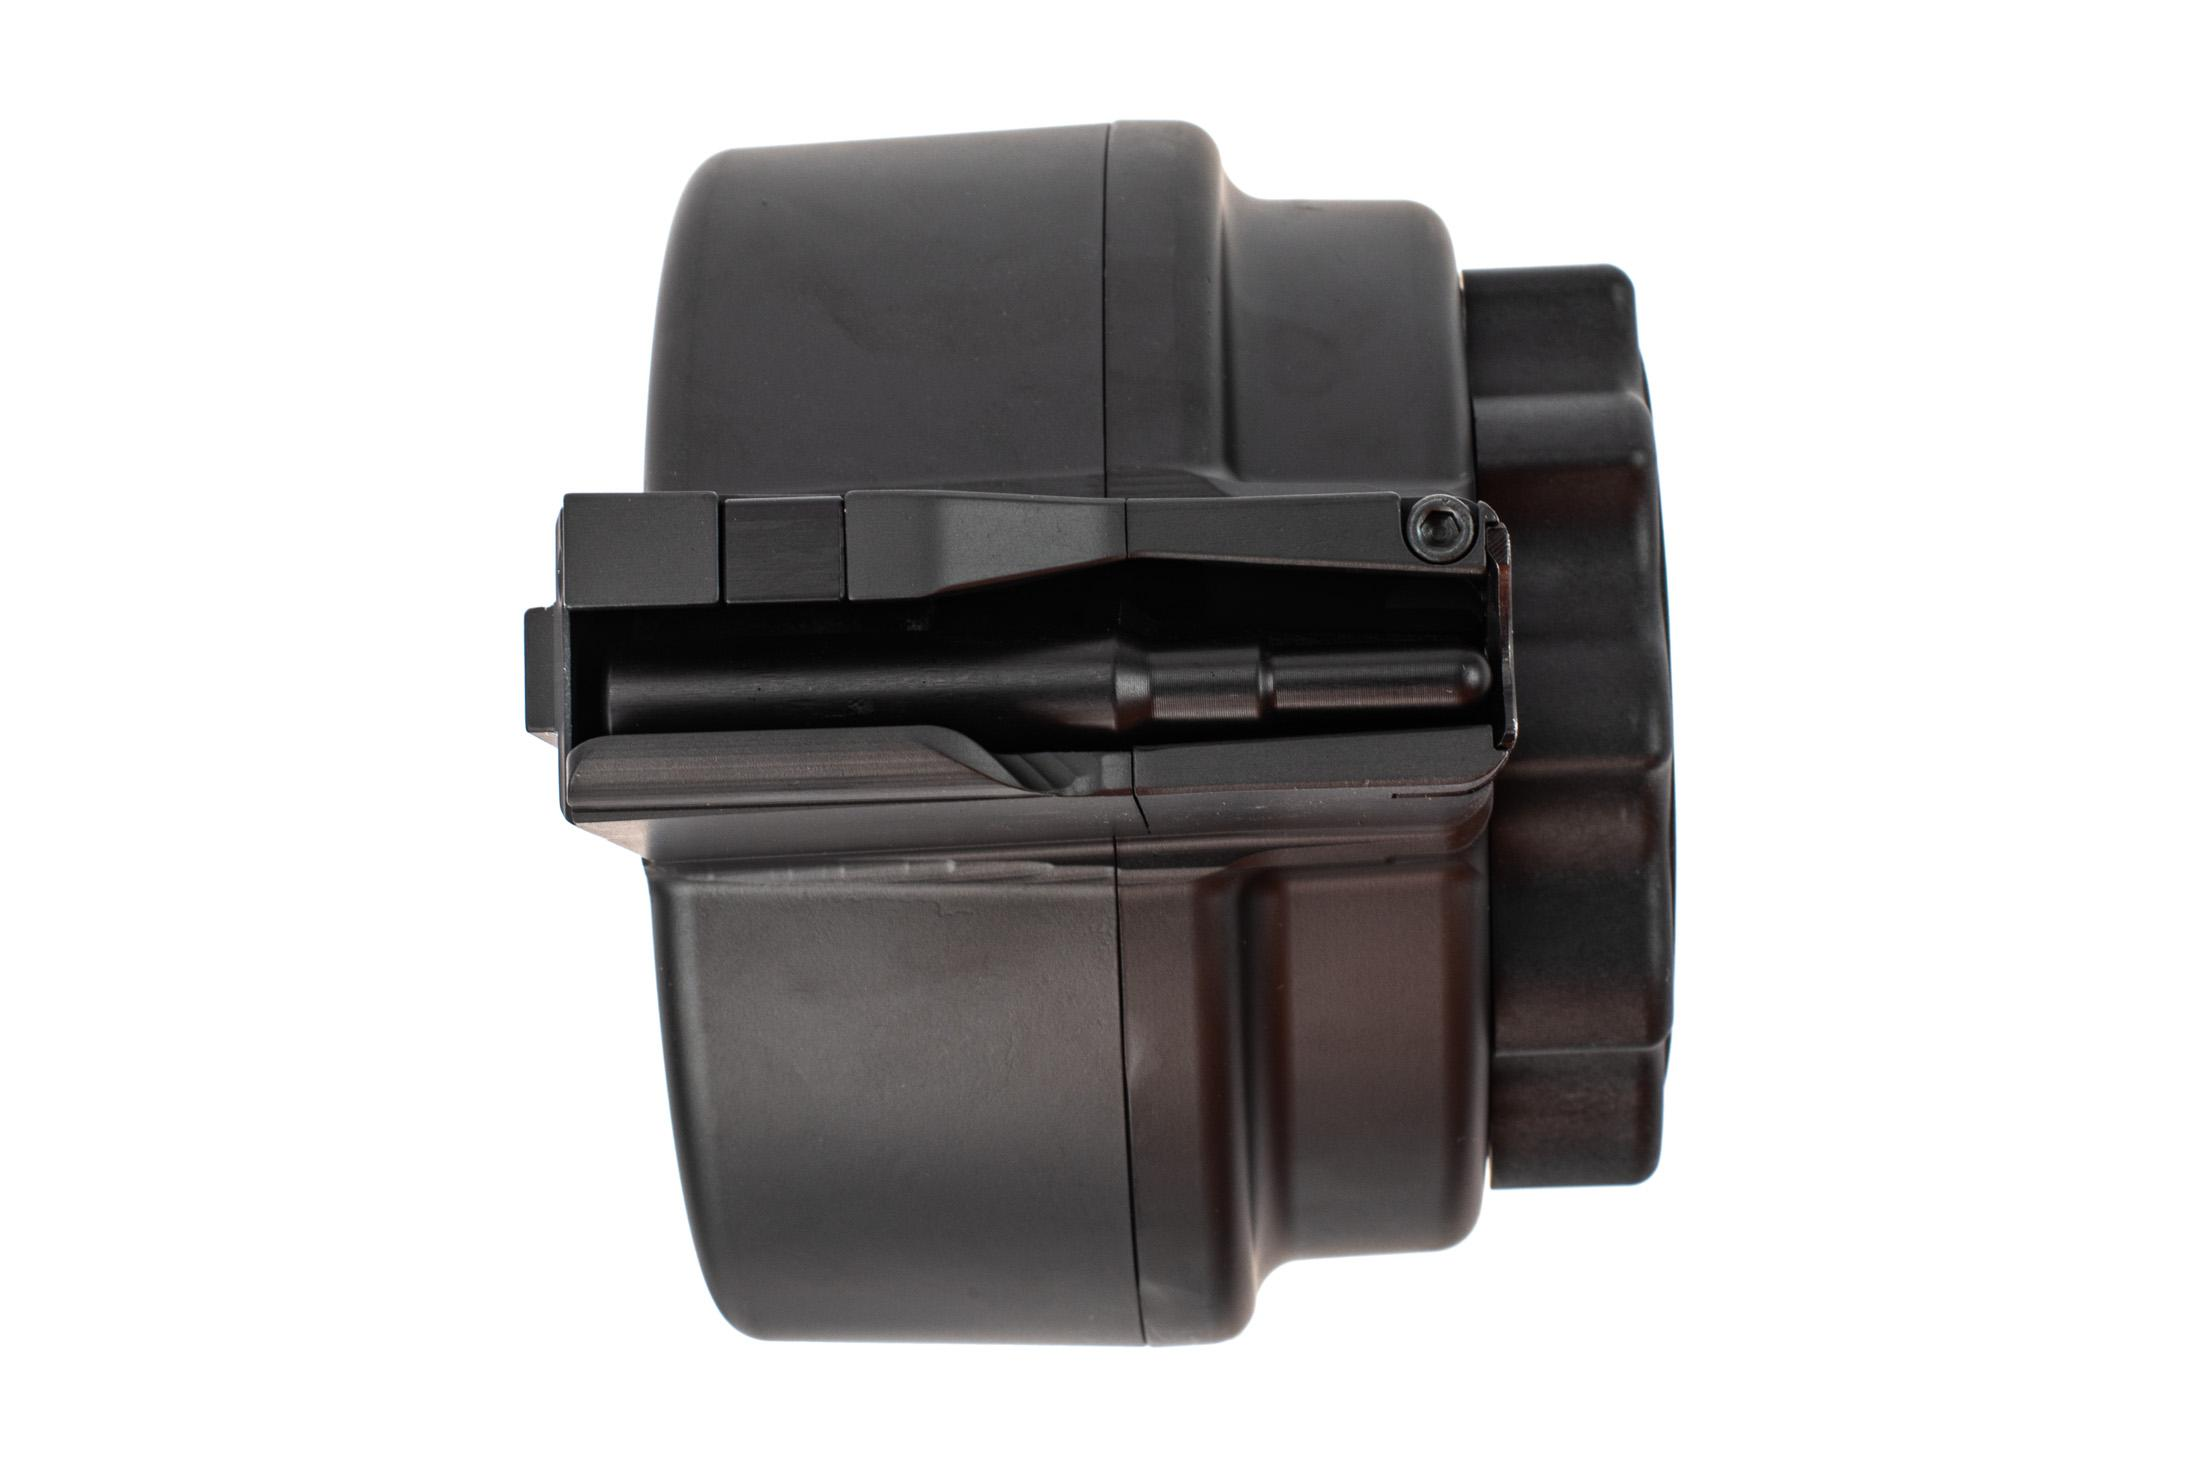 X Products X-14 drum magazine holds 50 rounds of 7.62 NATO in a compact reliable design.